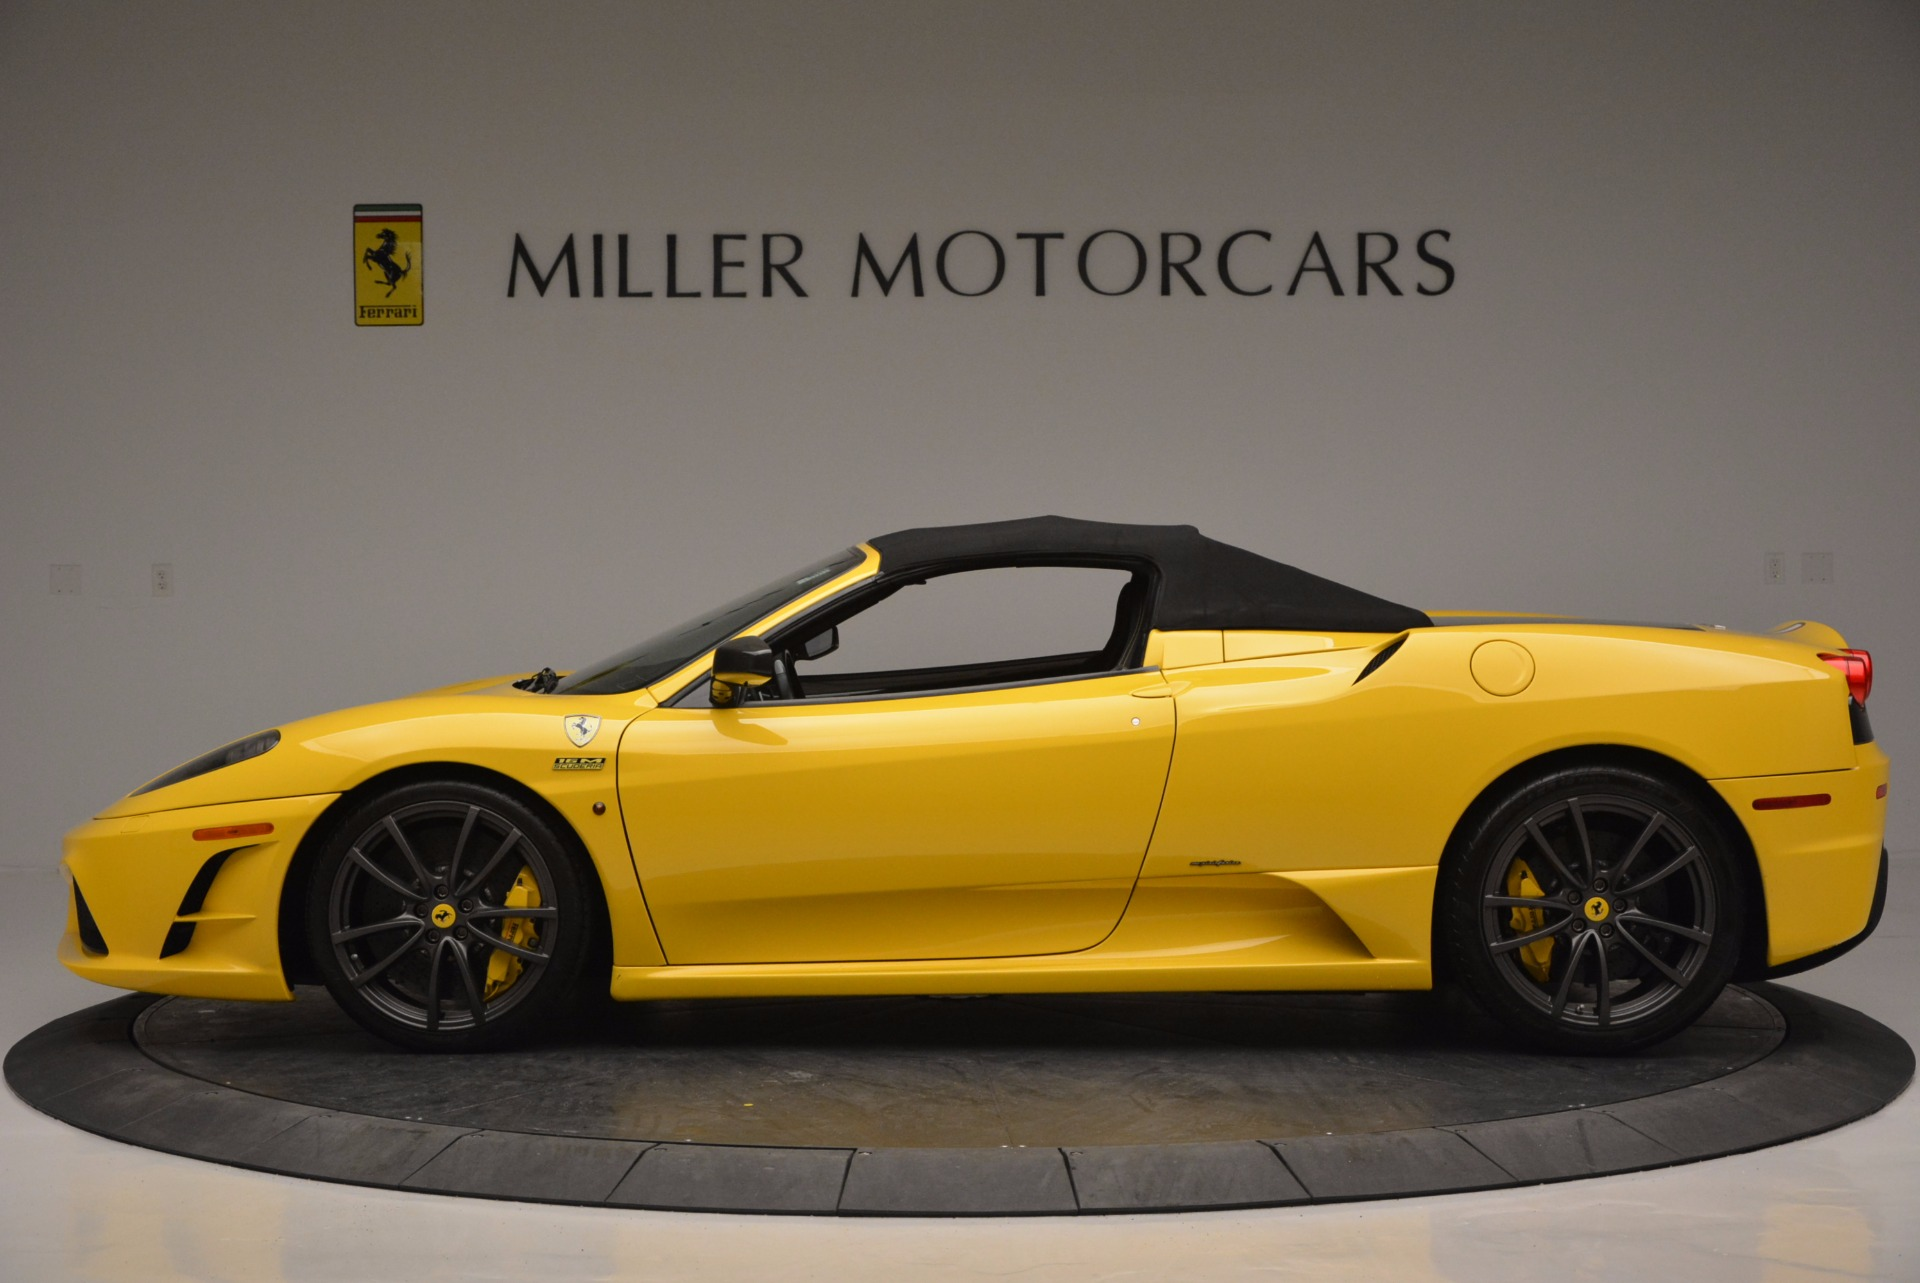 Used 2009 Ferrari F430 Scuderia 16M For Sale In Greenwich, CT 856_p15